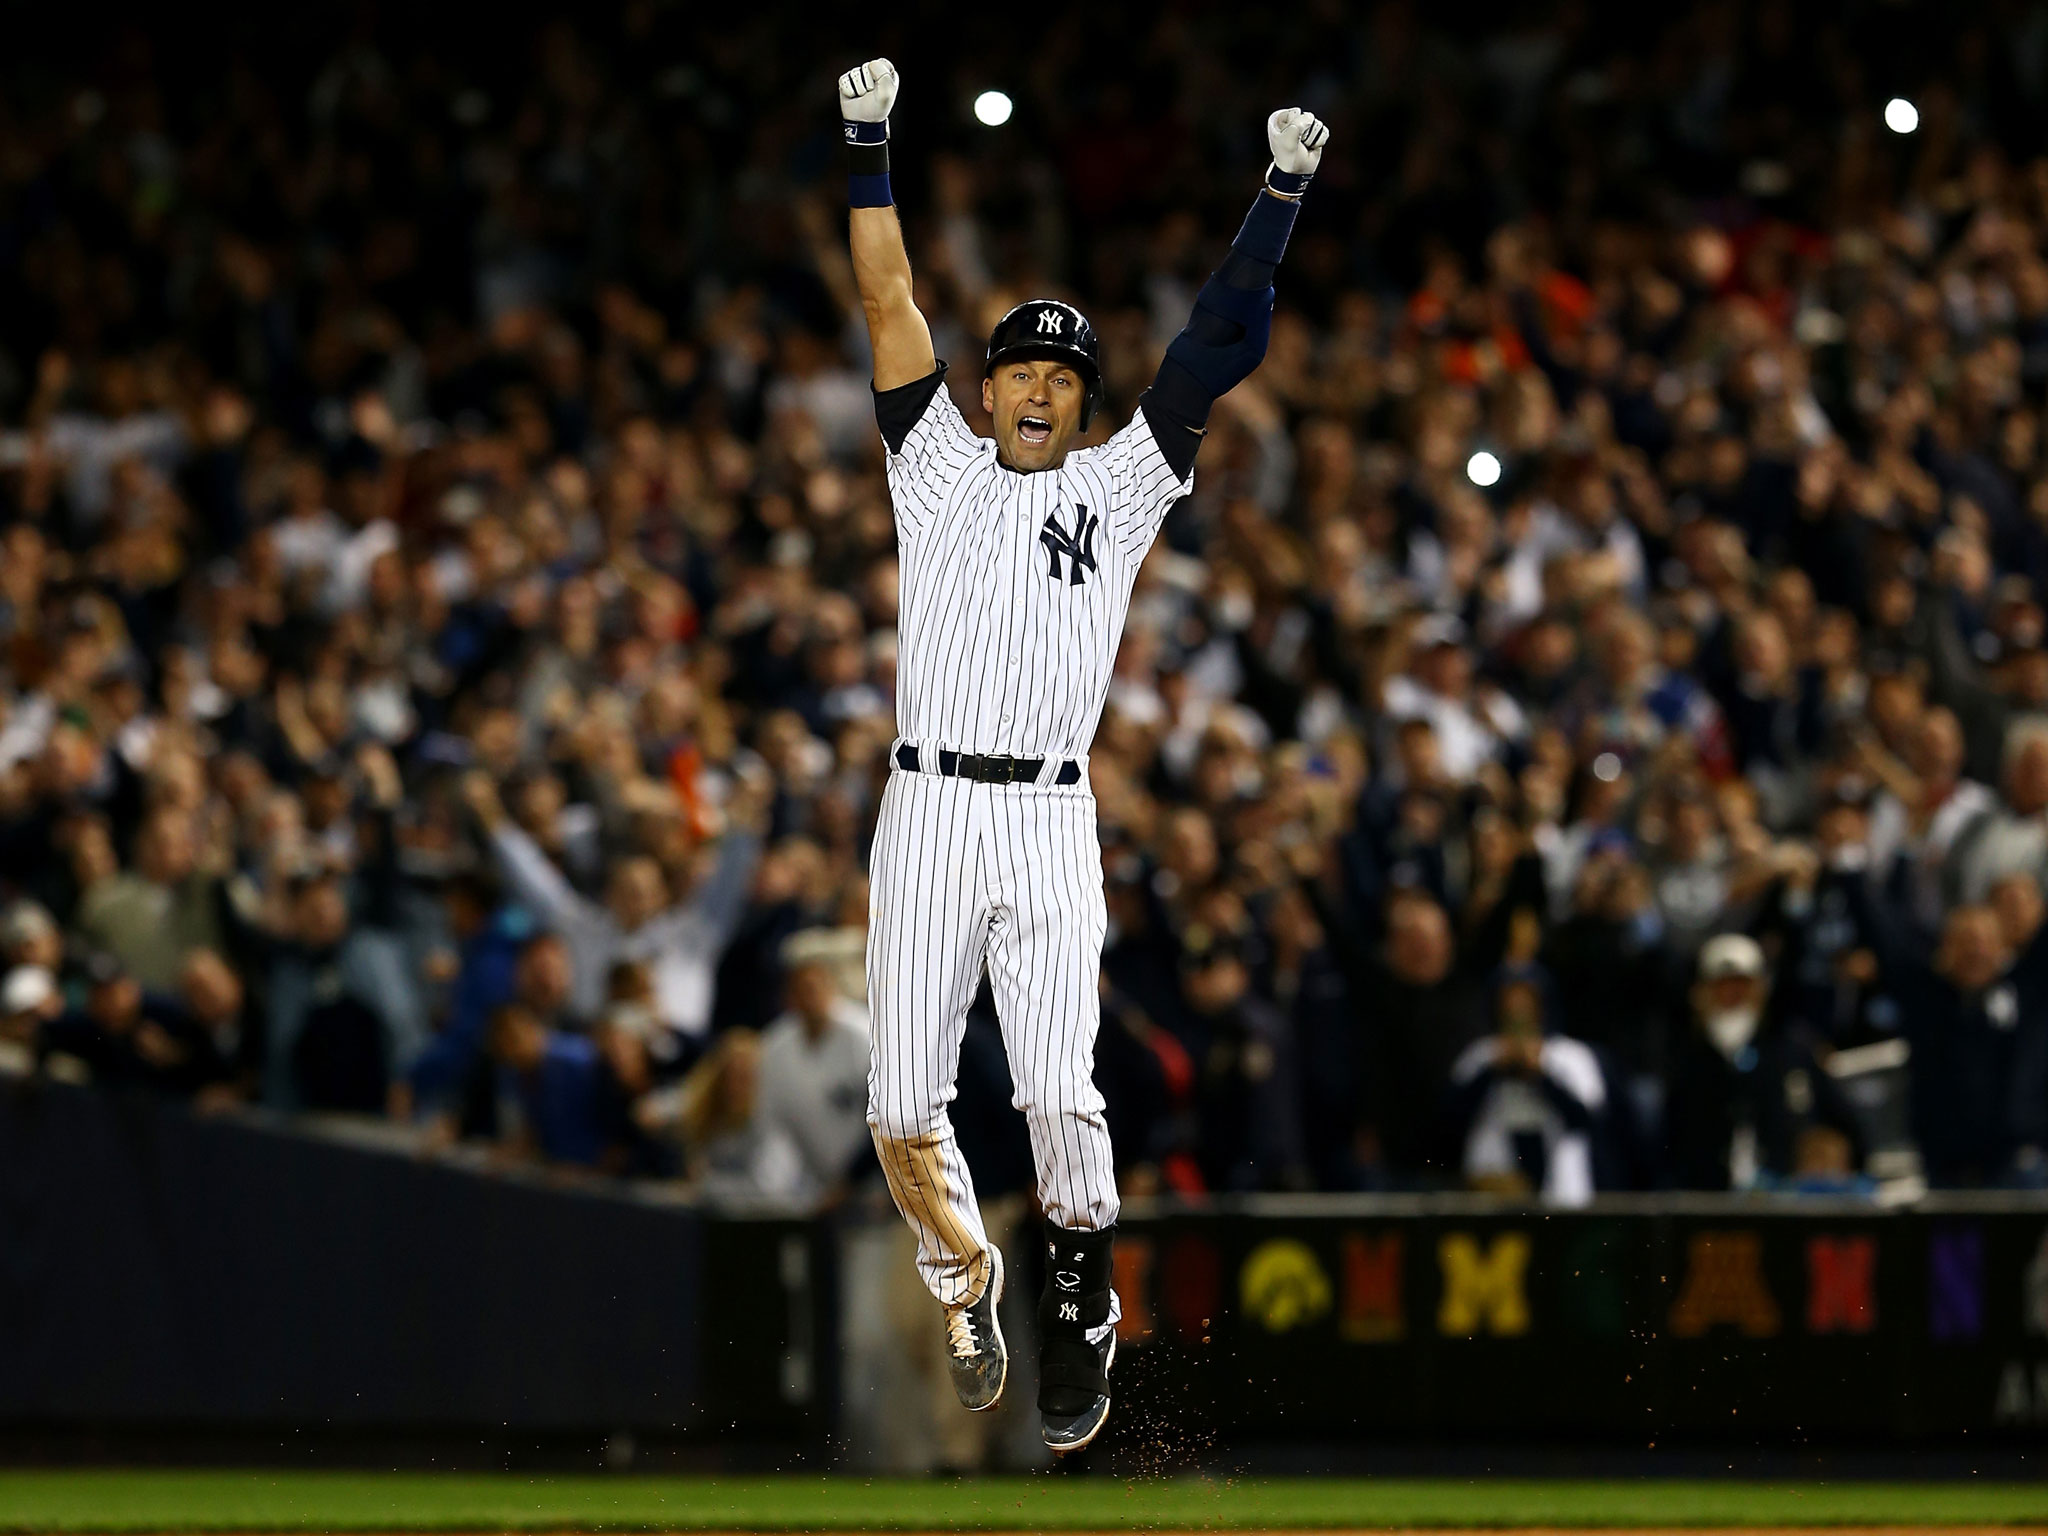 97 Derek Jeter Wallpapers On Wallpapersafari